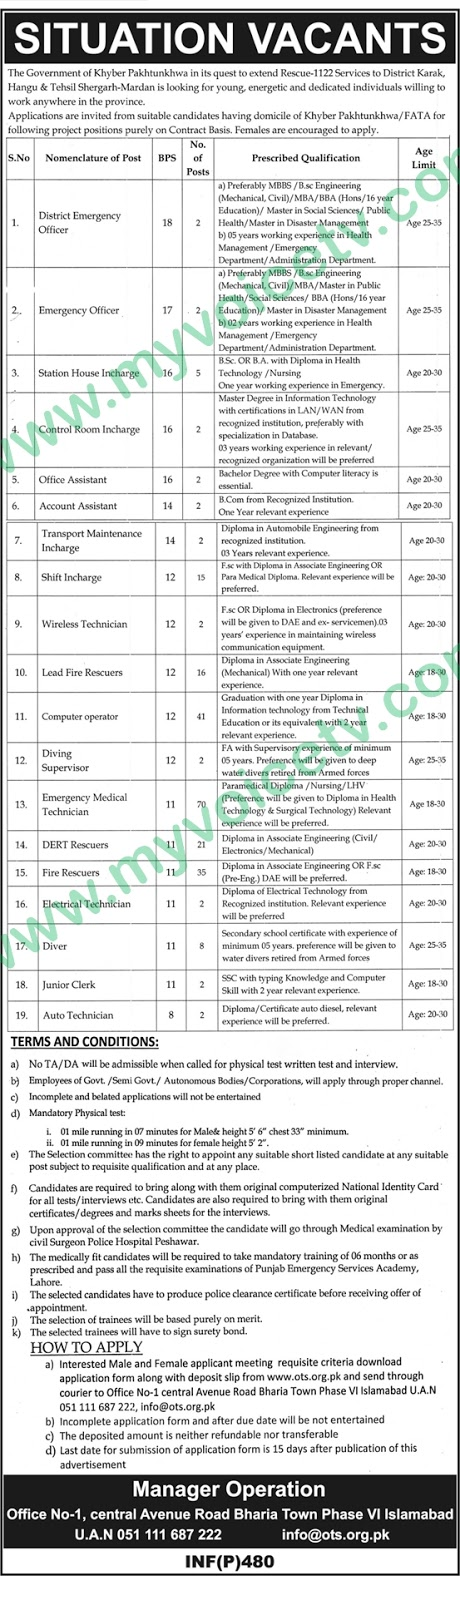 ➨ #Jobs - #Career_Opportunities - at Government of Khyber Pukhtunkhwa Job in Rescue 1122 services in Dristrict Karak  – Read this ad for details - Last date is 14th Feb 2019